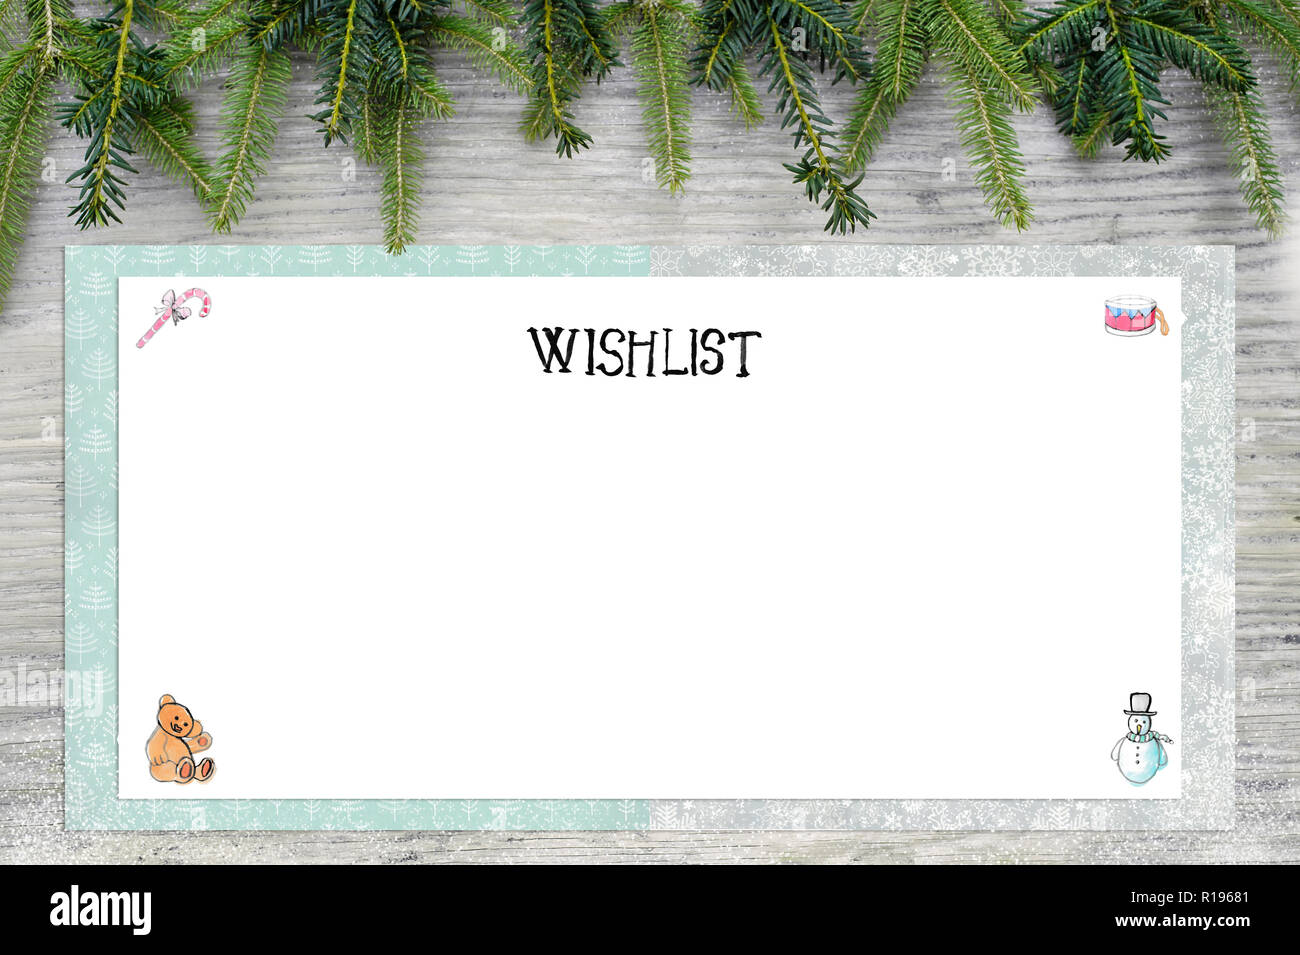 Christmas illustrations. English text wish list as handlettering. In the background is wood and fir green. Stock Photo